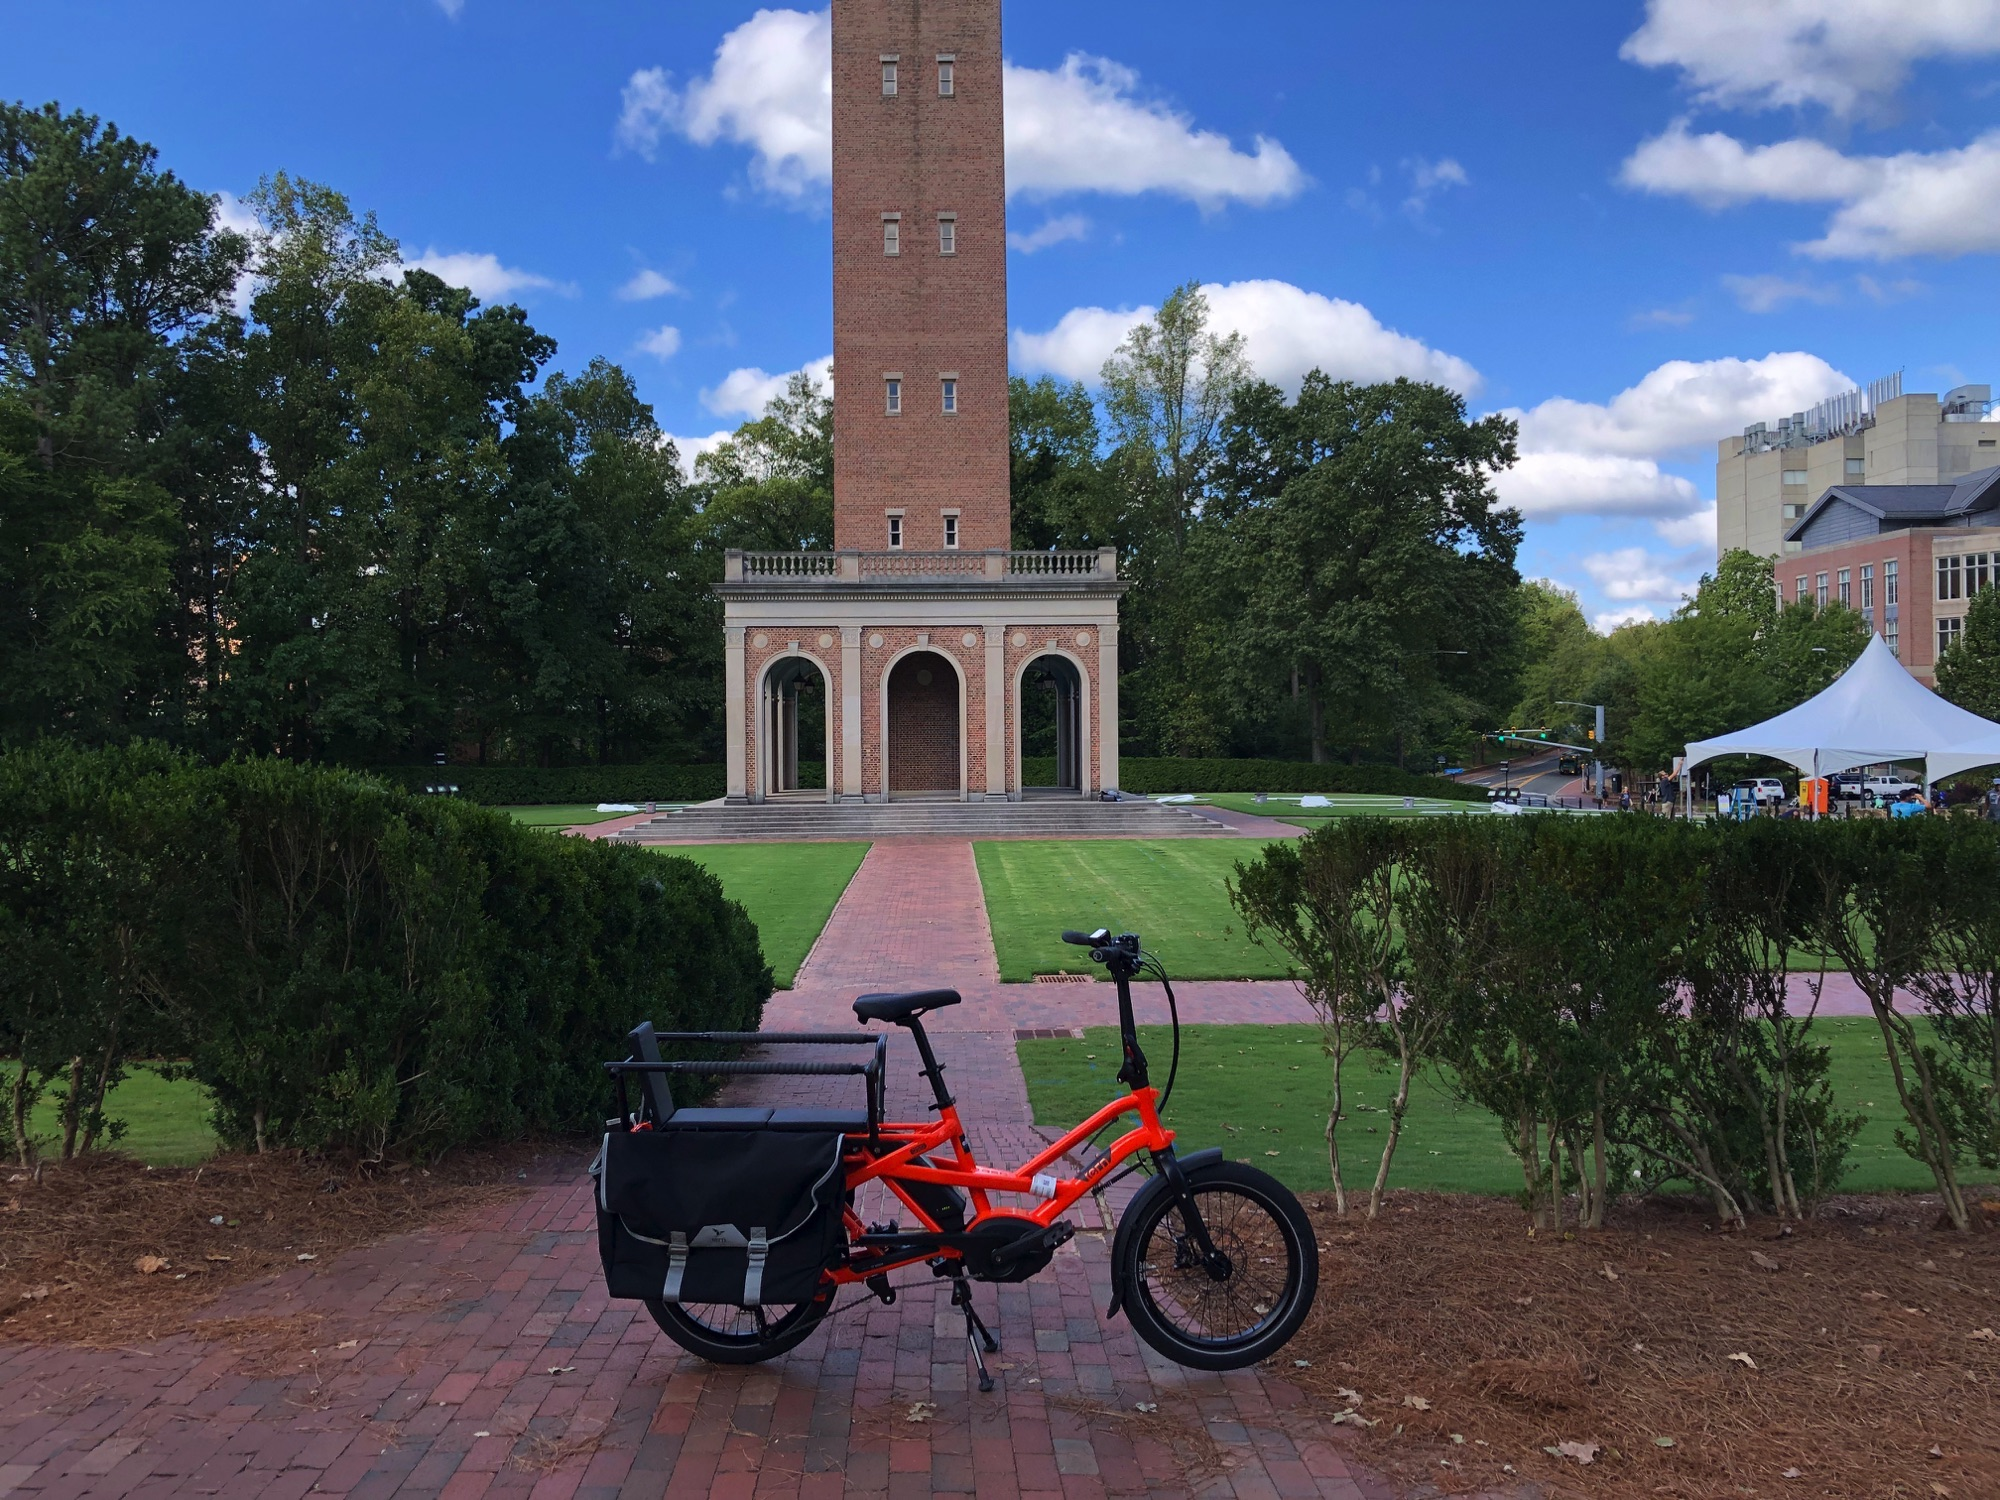 eBike Central at UNC in Chapel Hill NC